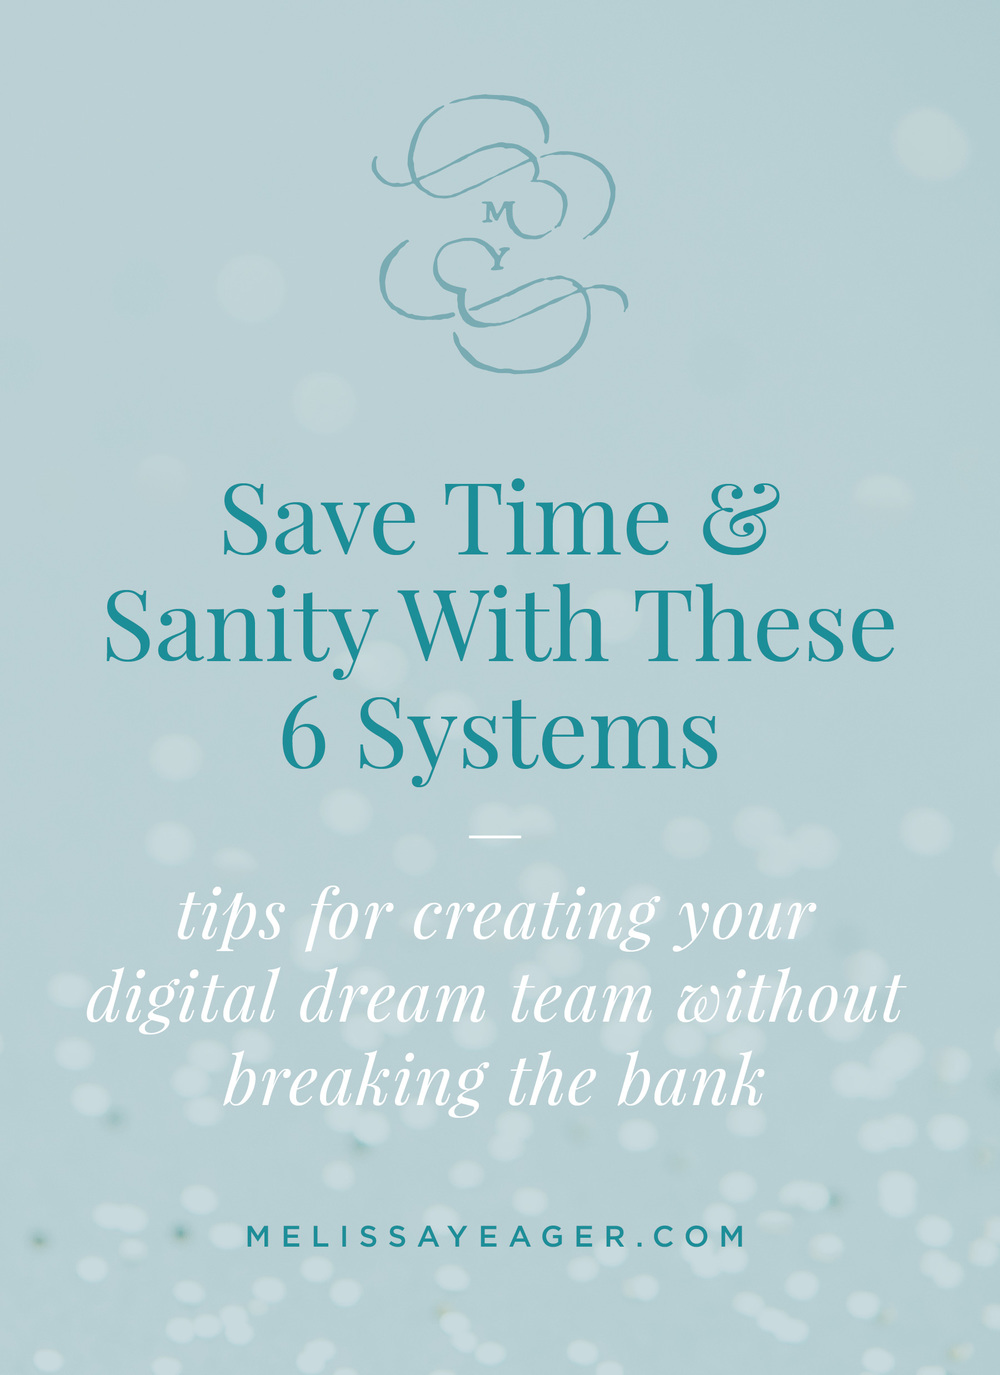 Save time & sanity with these 6 systems - tips for creating your digital dream team without breaking the bank